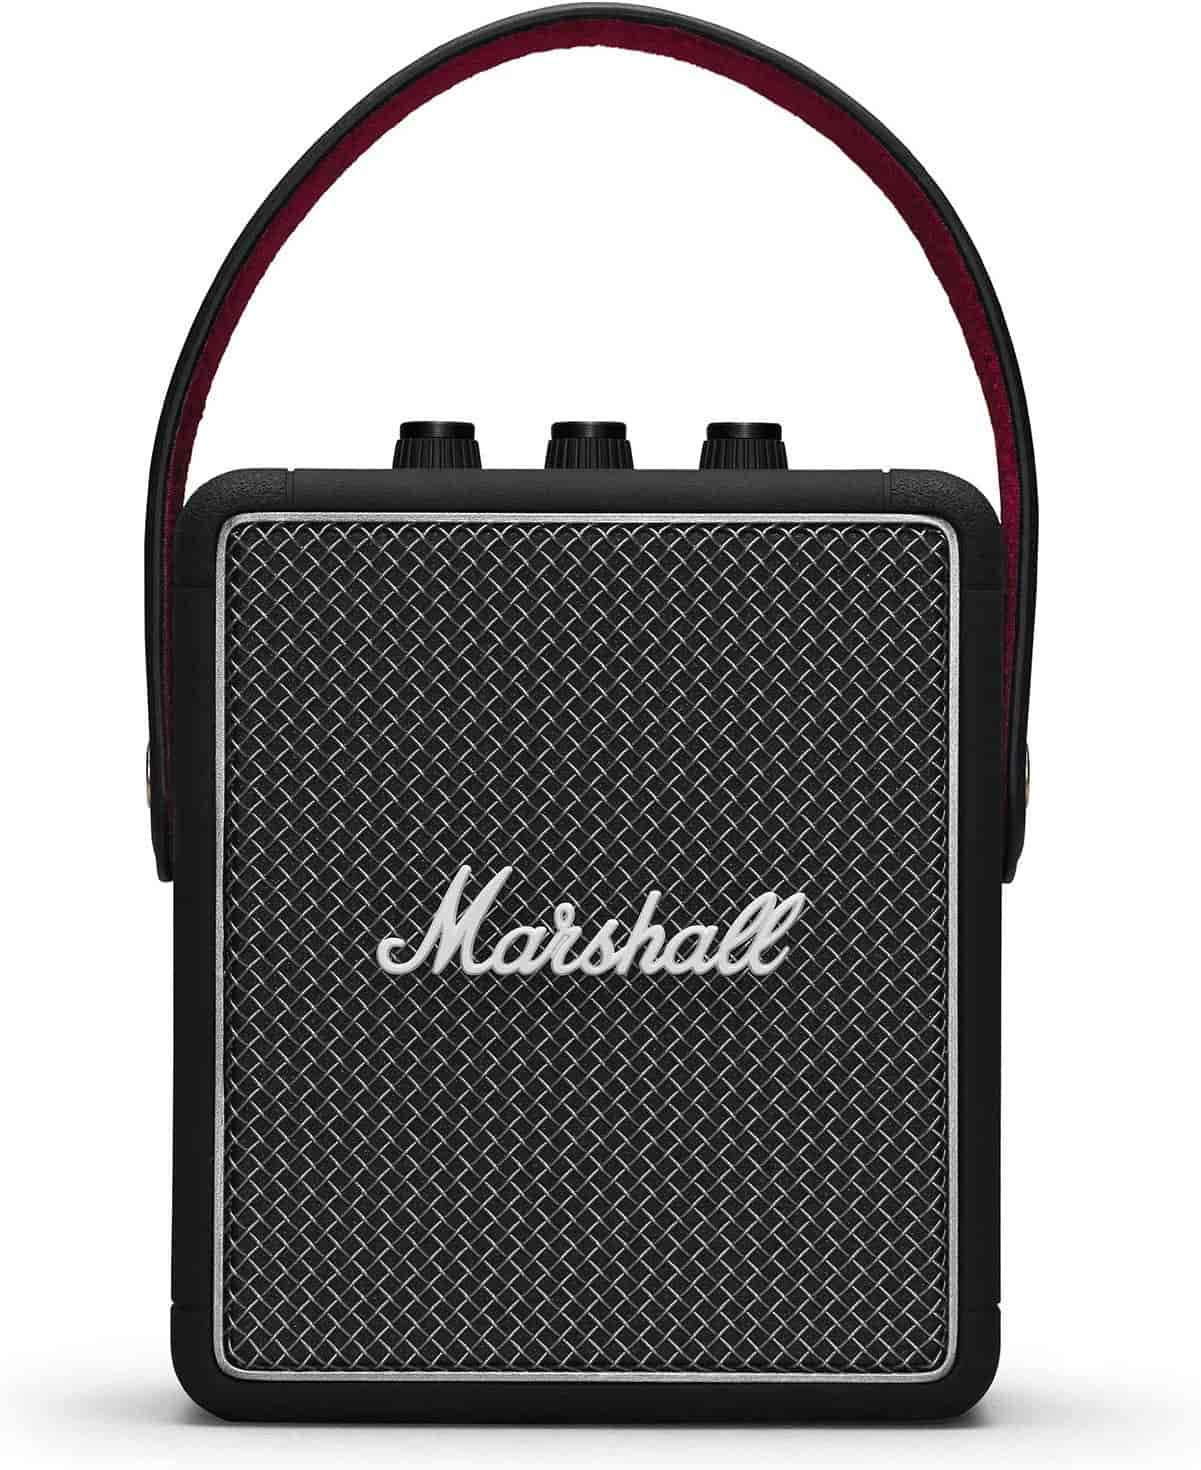 Marshall Stockwell II Portable Bluetooth Speaker - Black -min